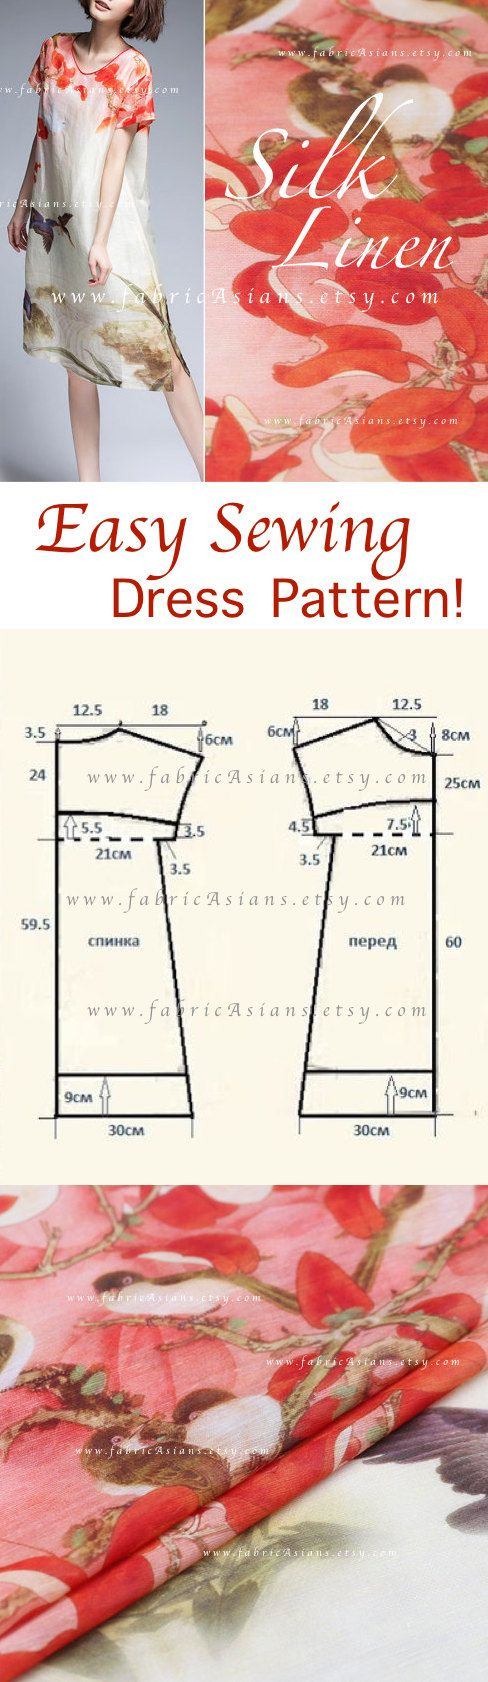 How to sew easy summer dress FREE PDF pattern by fabricAsians on ...